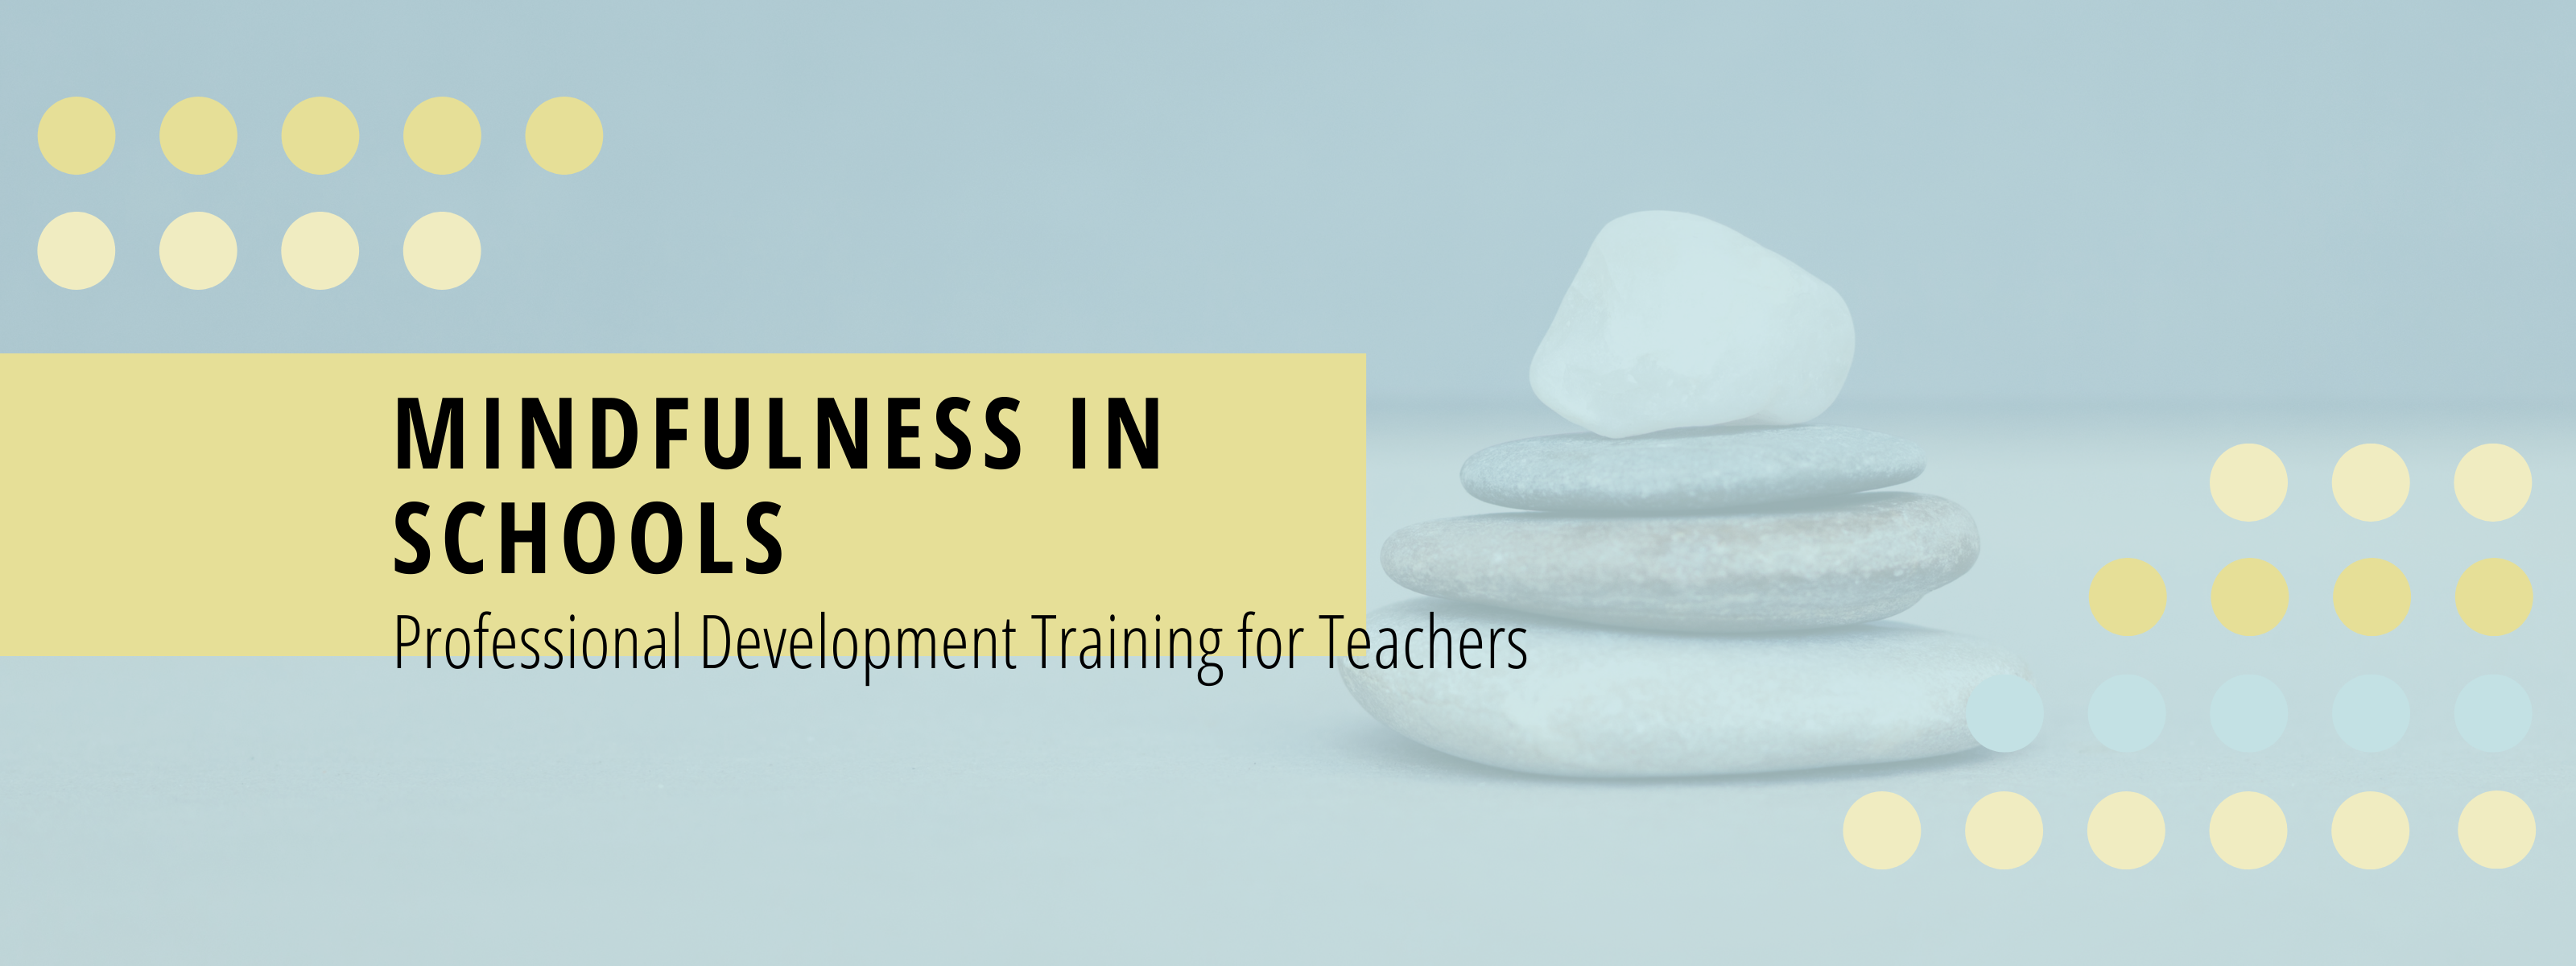 """Words say"""" """"Mindfulness in schools: Professional Development Training for Teachers. Background is a blue overlay with light green dots on an image with rocks stacked"""